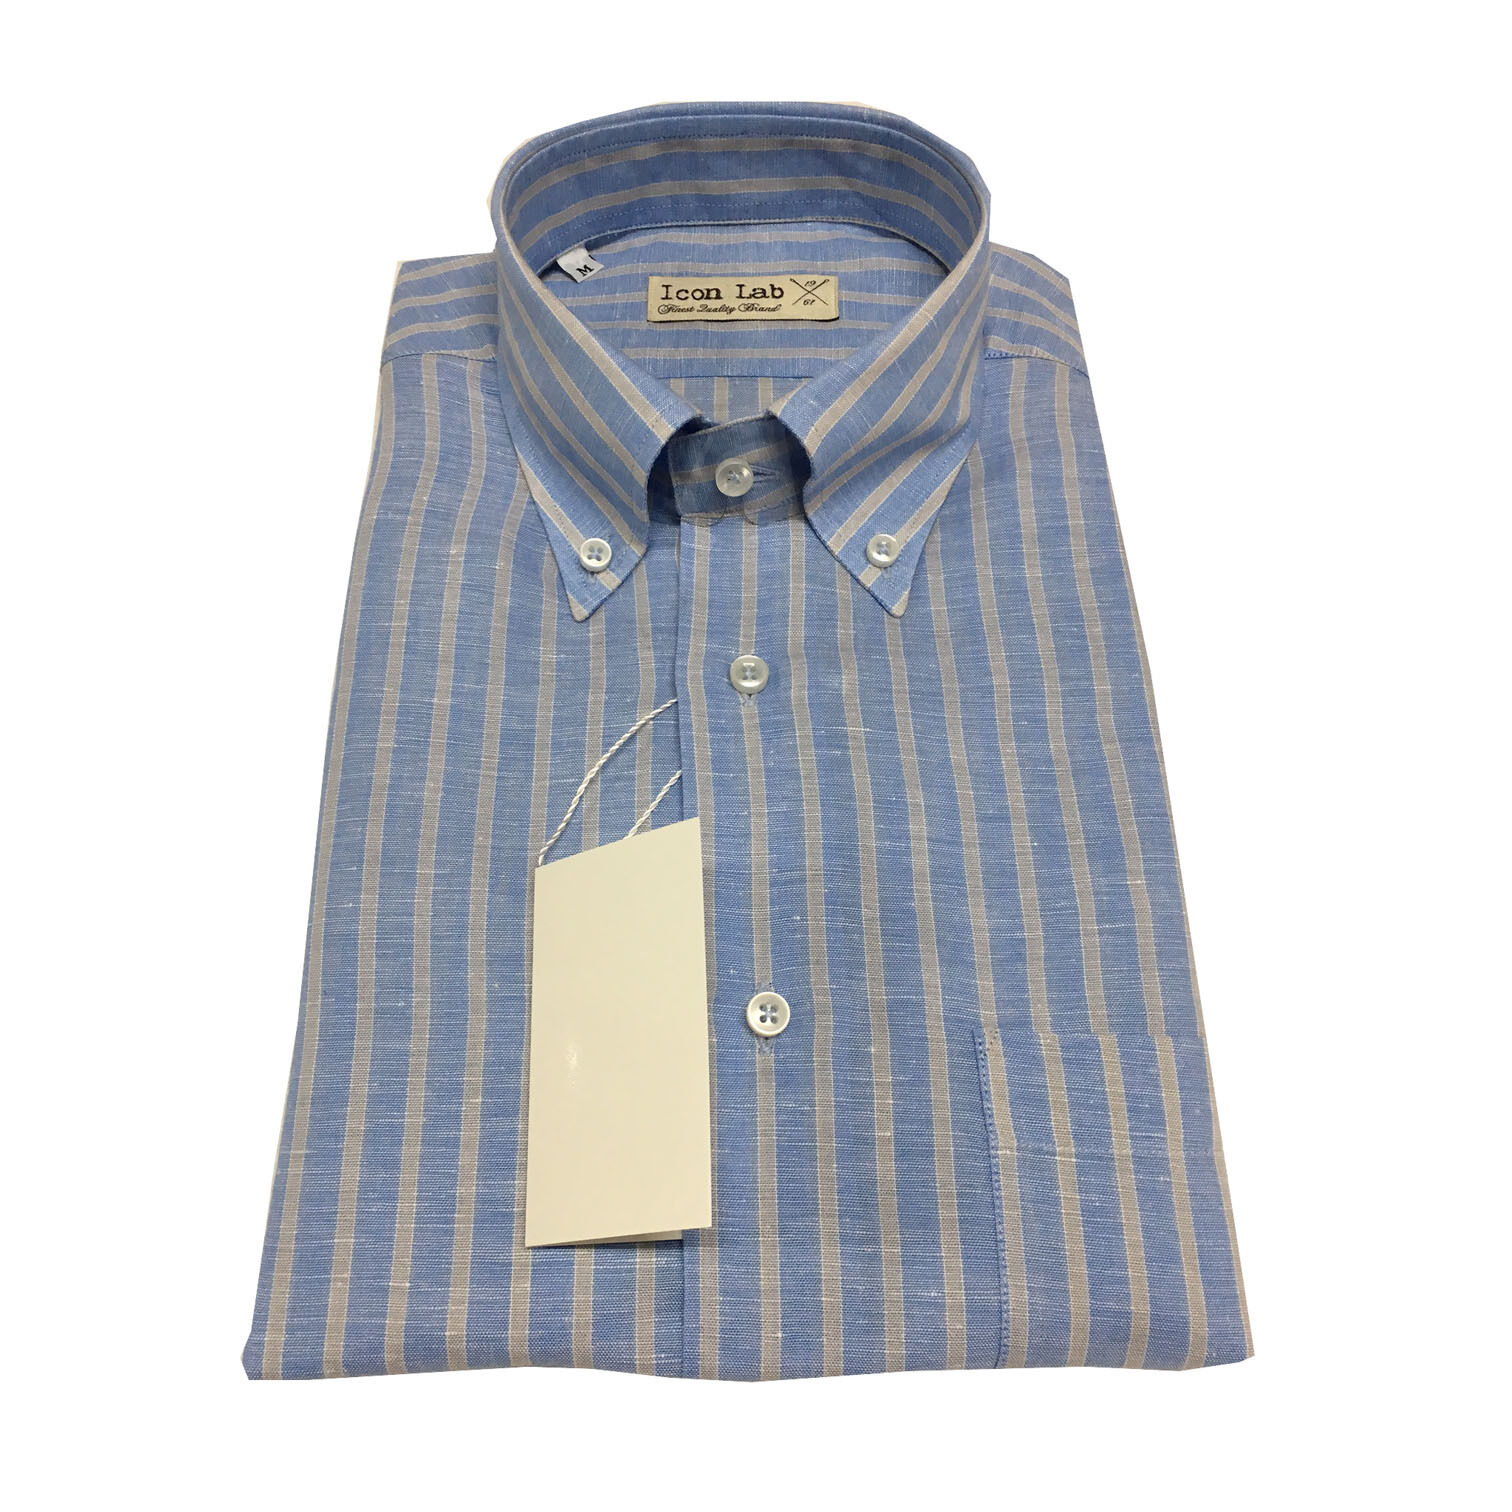 ICON LAB 1961 men's shirts short sleeves Striped baby bluee pearl 58% linen 42%